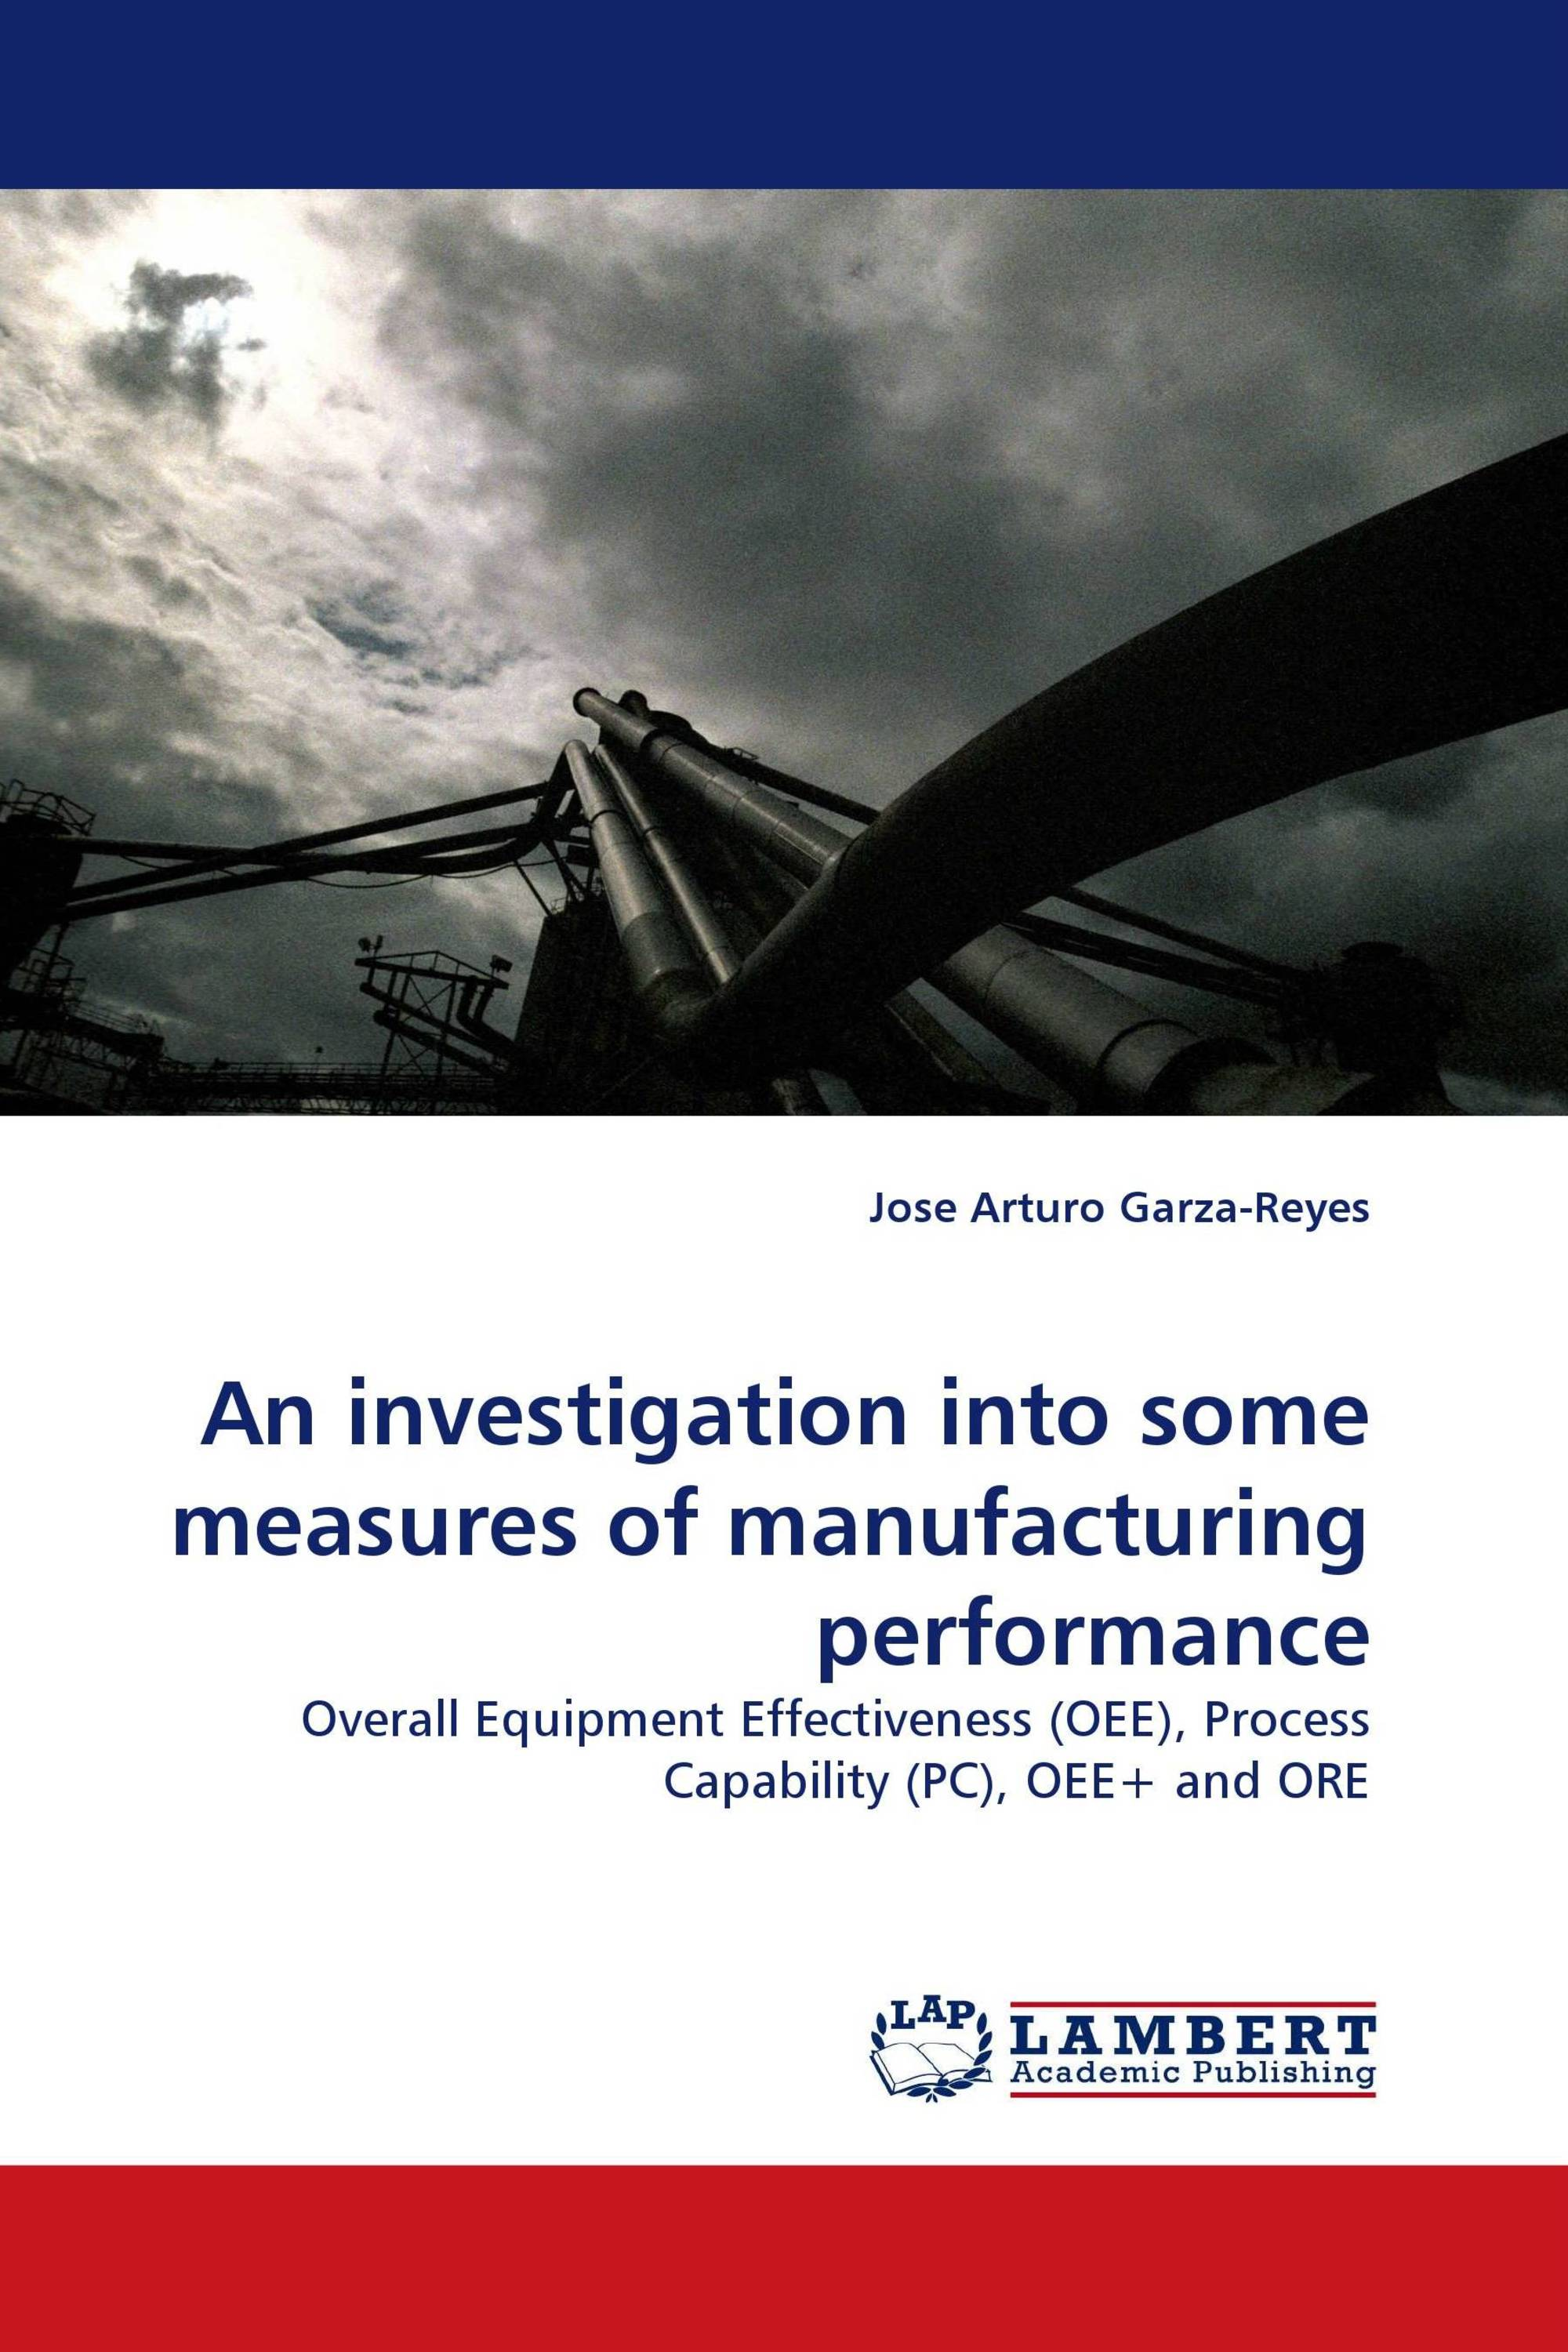 An investigation into some measures of manufacturing performance